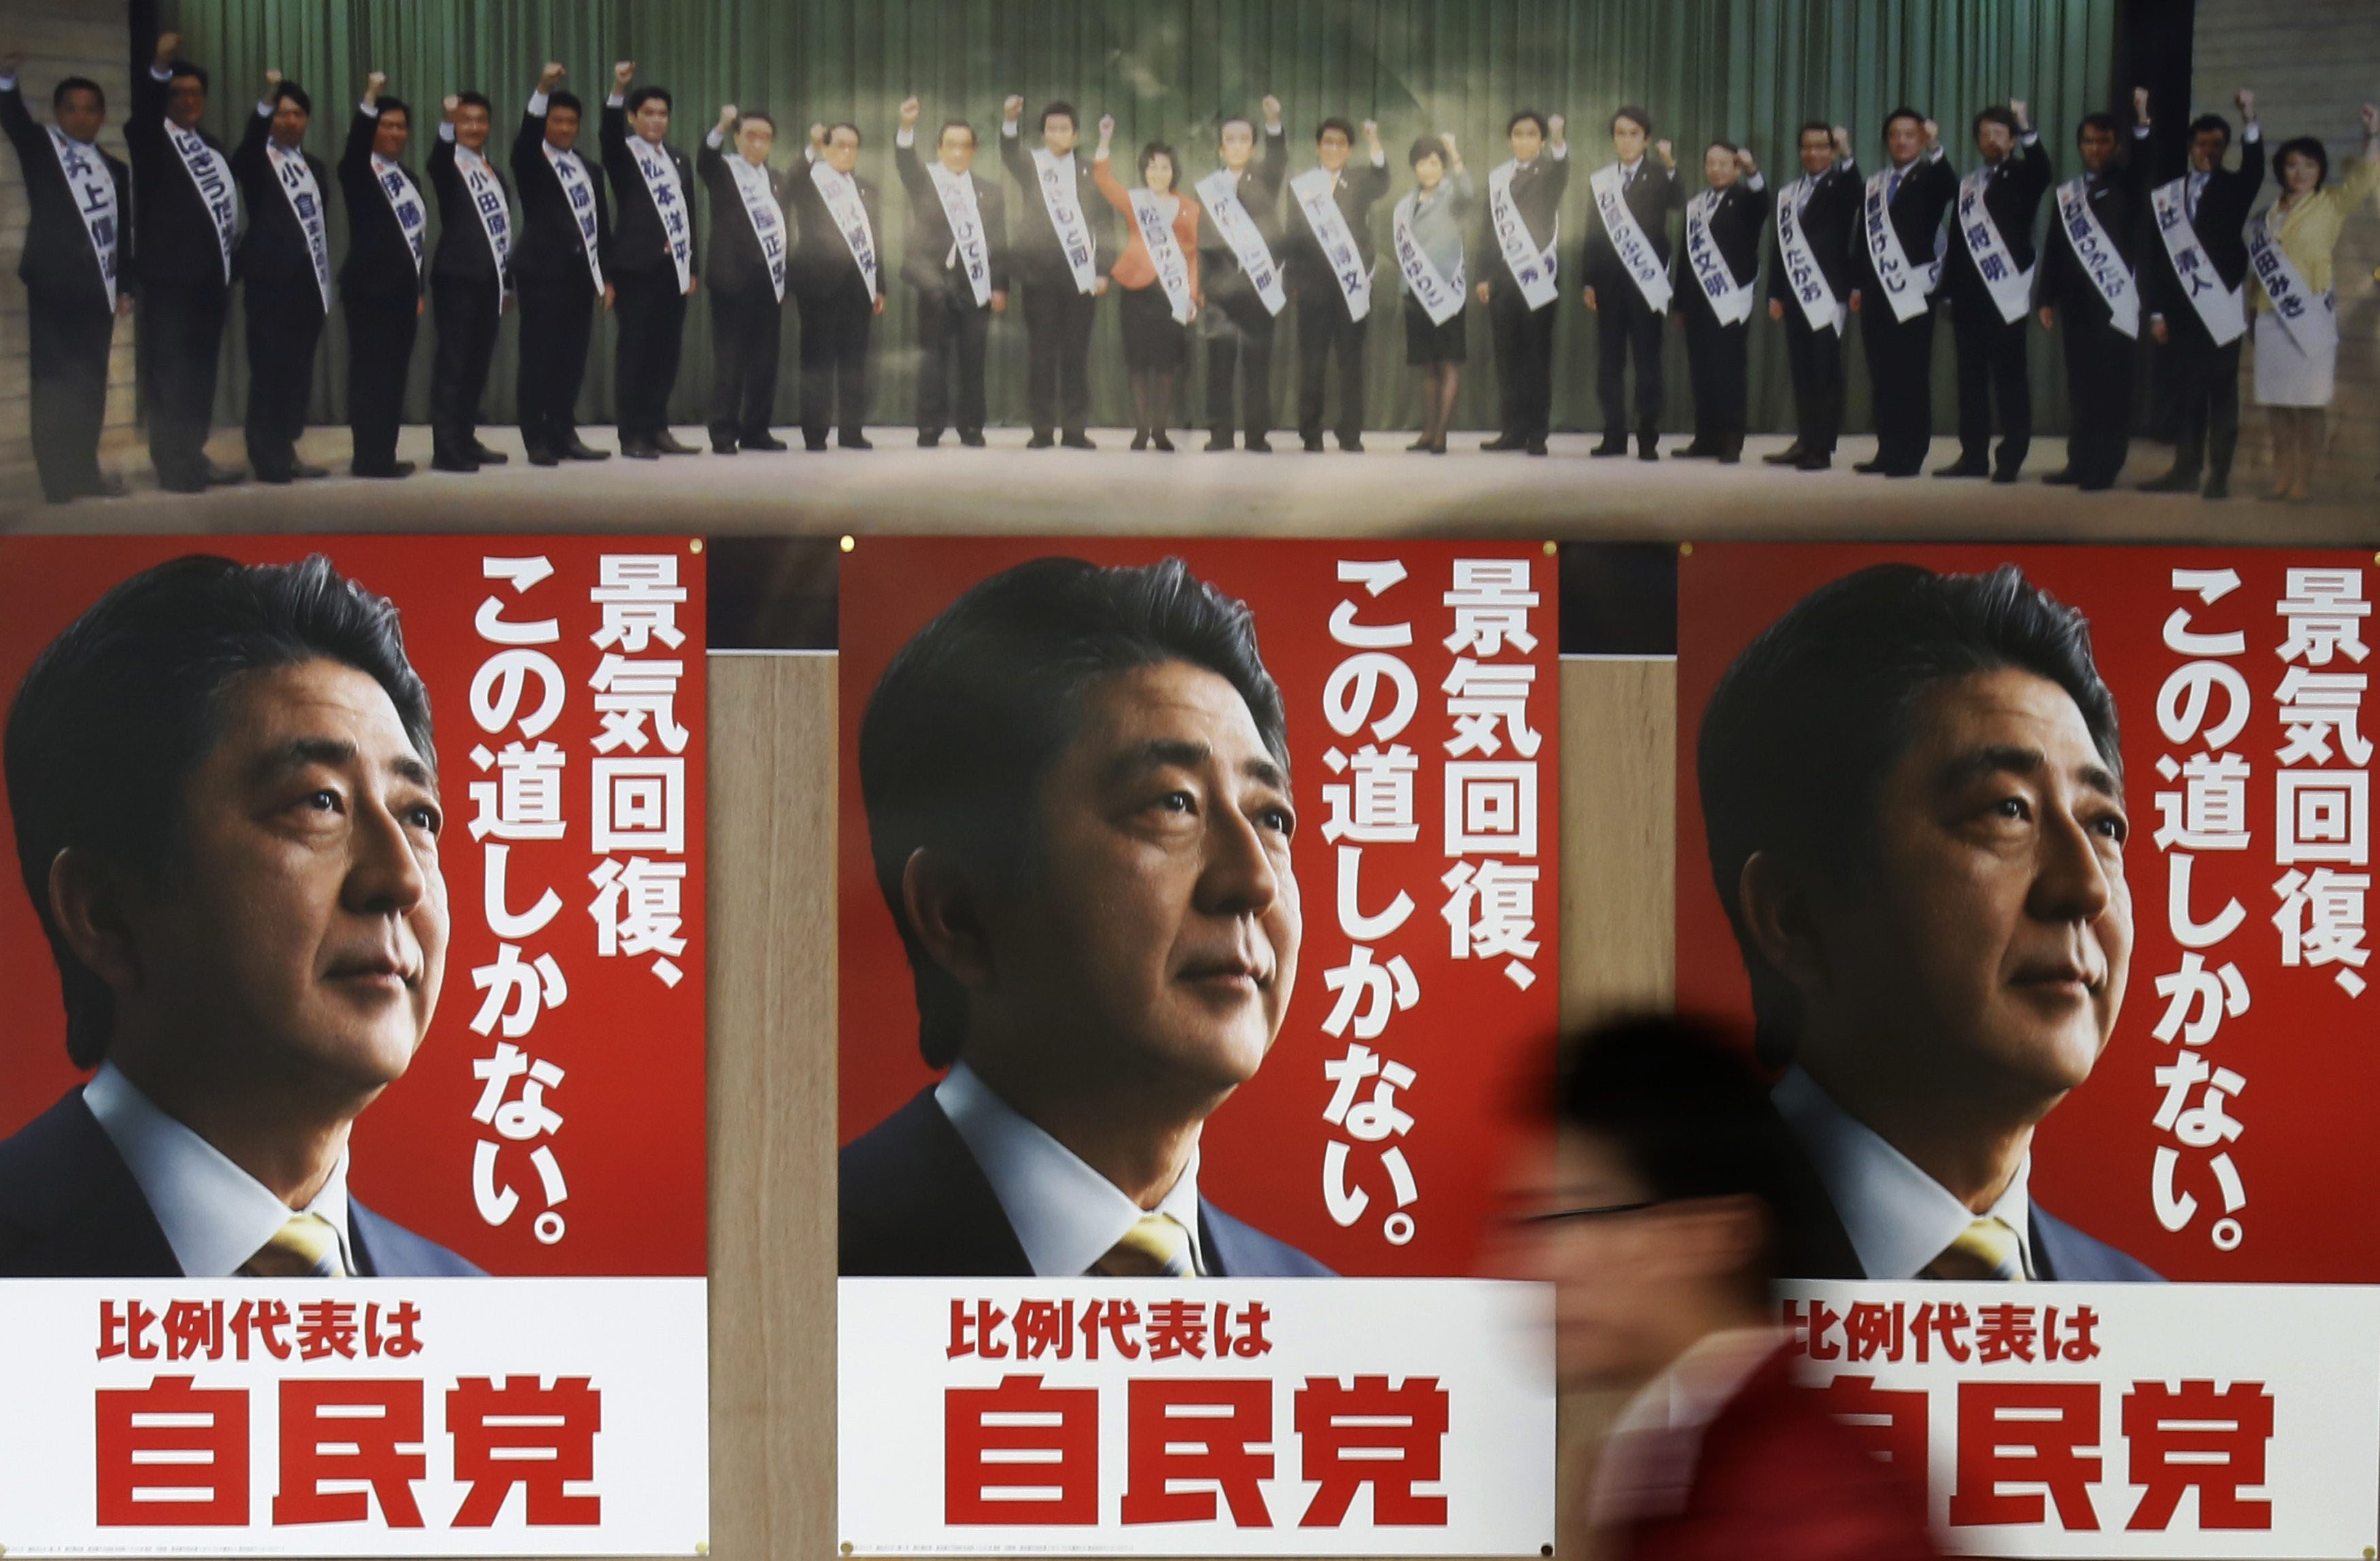 Staff member of Japan's ruling Liberal Democratic Party walks past election campaign posters showing Japan's Prime Minister Shinzo Abe at the LDP regional election office in Tokyo